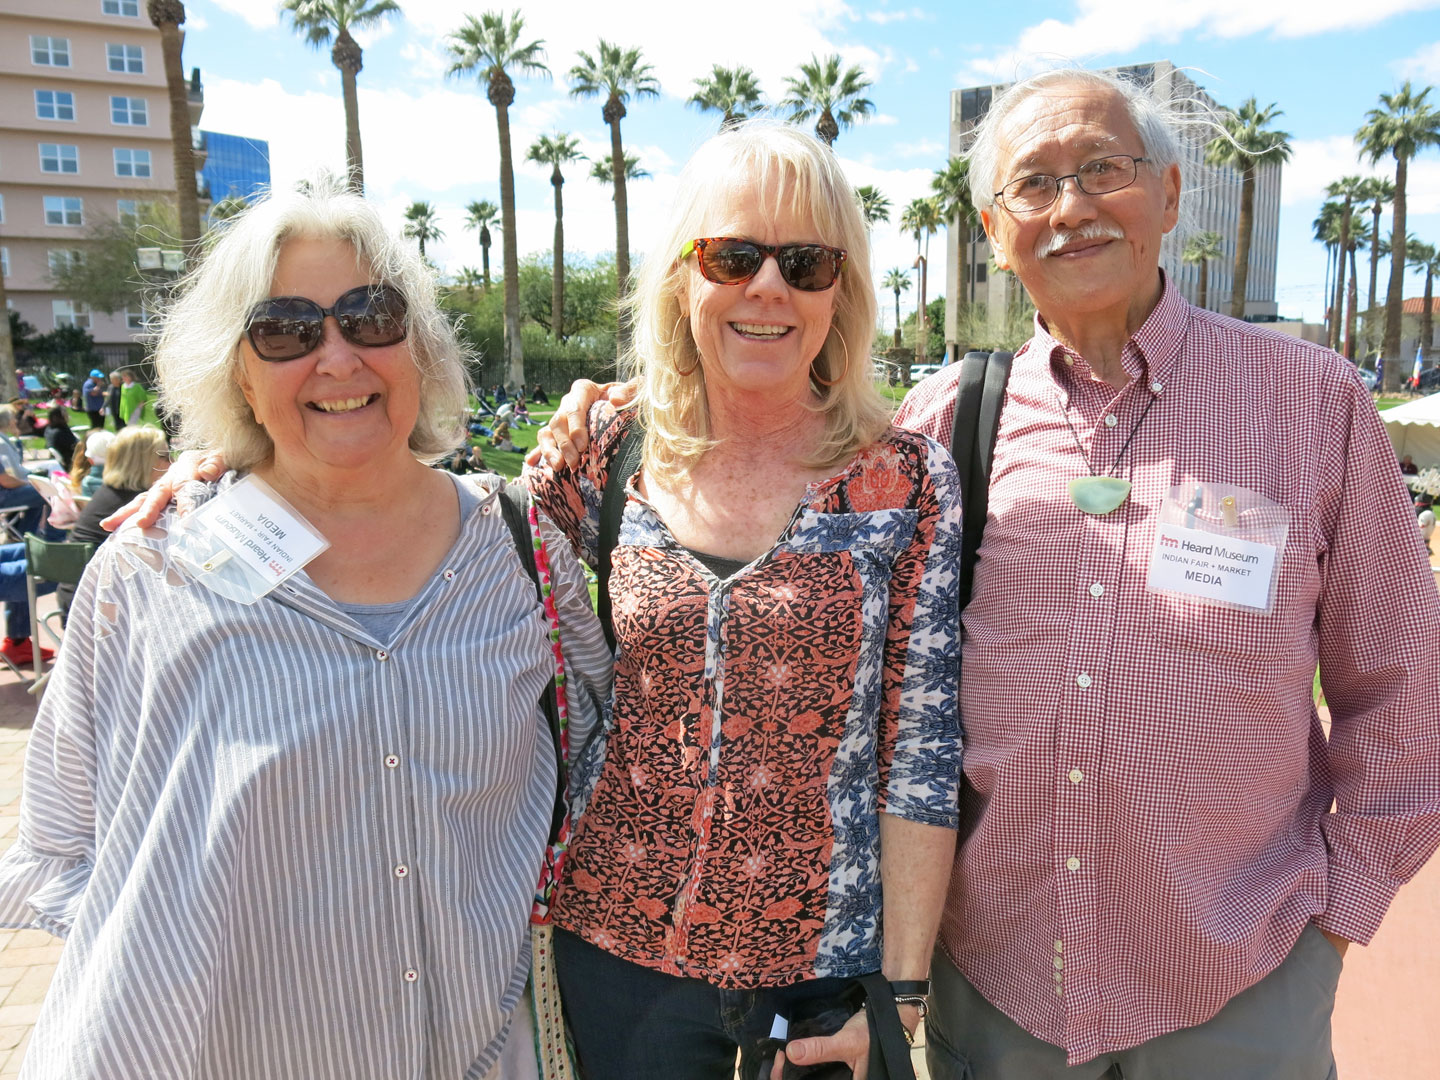 ORNAMENT COEDITORS CAROLYN L. E. BENESH AND ROBERT K. LIU with Idyllwild Arts Summer Program Director Heather Companiott. Companiott also heads the Native American Program & Festival at Idyllwild. The three have known each other for years.